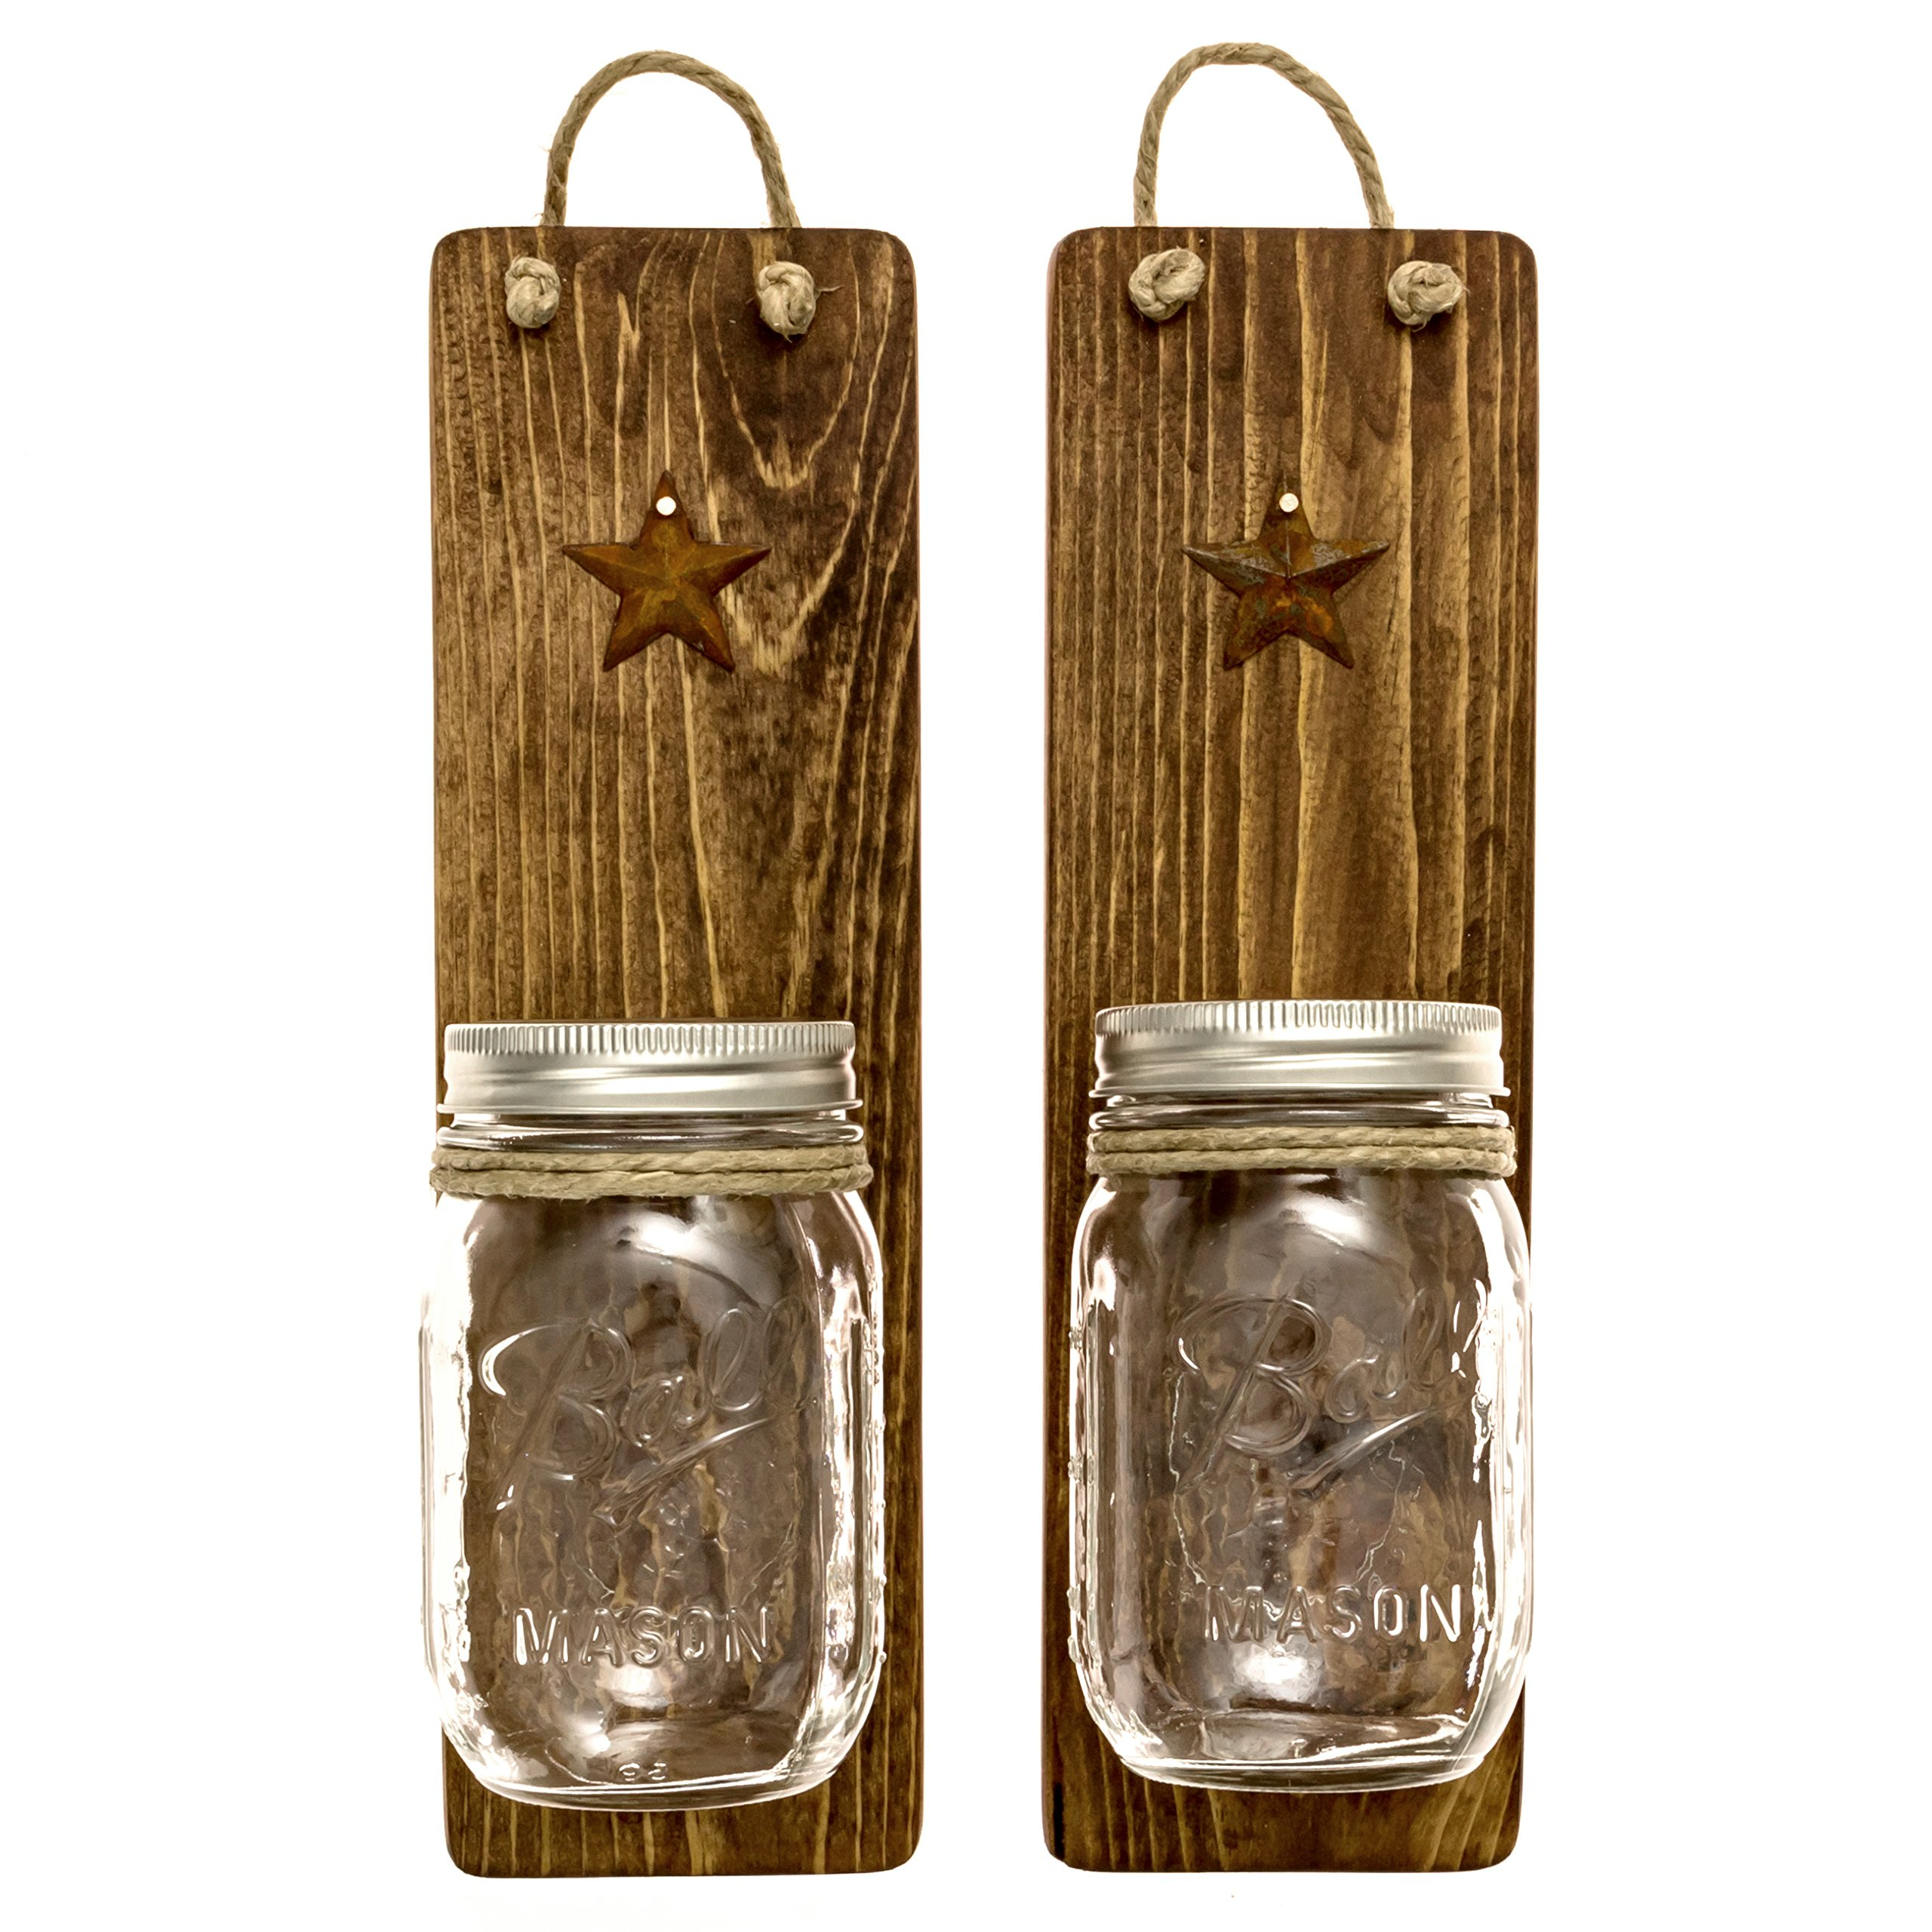 Heartful Home Decor Ball Mason Jar Wall Sconces - Primitive Country- Set of 2 - Perfect for Candles, Flowers, or Anything You Like to Showcase, Top Rustic Housewarming Gift (Honey)